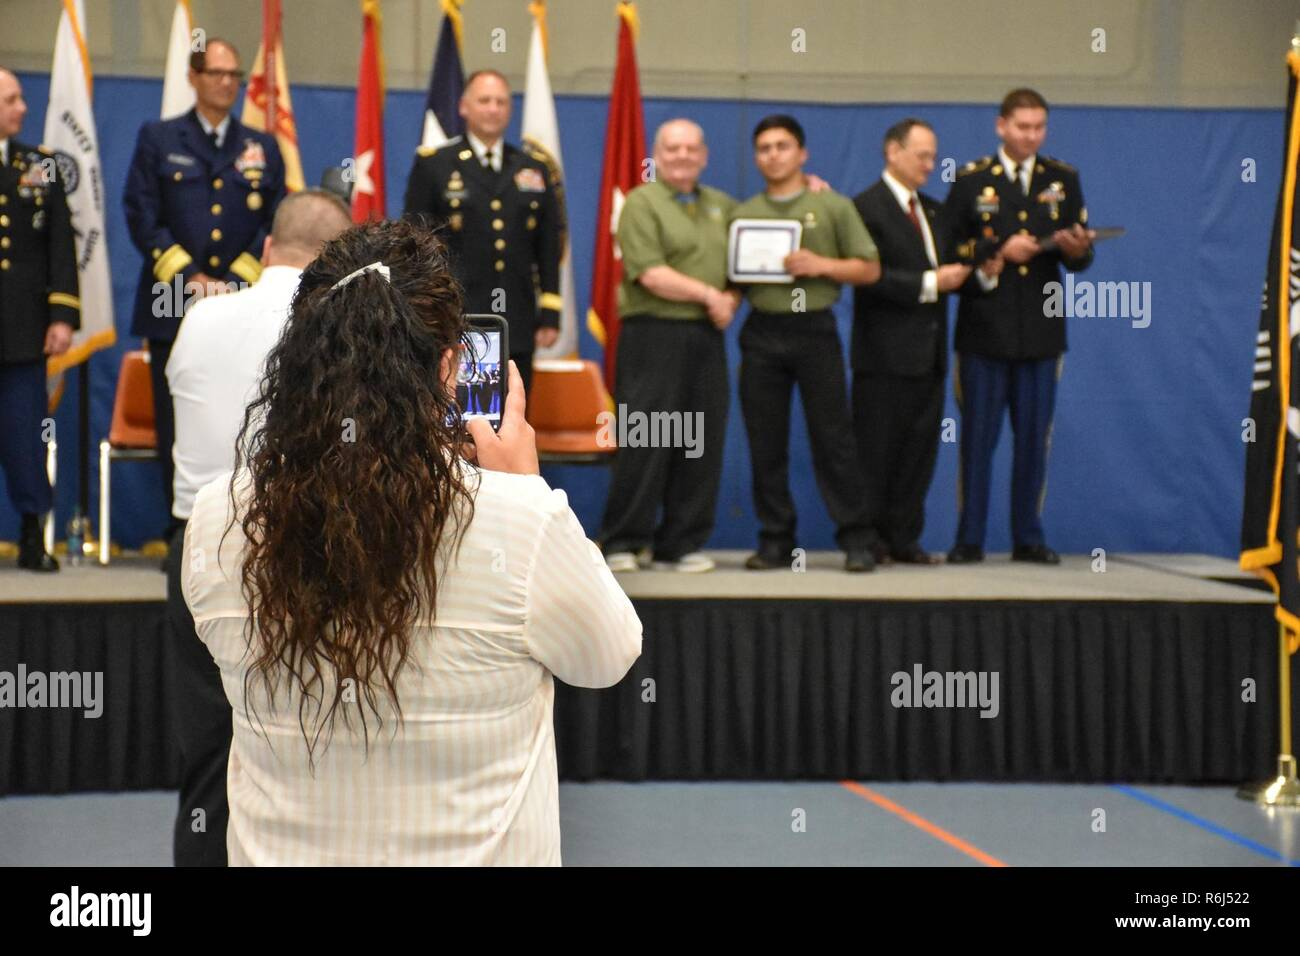 "A proud future U.S. Army Reserve mom takes photos as her son receives an ""Our Community Salutes"" certificate from Medal of Honor recipient Command Sergeant Major (Ret.) Kenneth E. Stumpf and Fort McCoy Senior Commander and 88th Regional Support Command Commanding General, Maj. Gen. Patrick Reinert during an ""Our Community Salutes"" event at Fort McCoy, Wisconsin on Armed Forces Day, May 20, to recognize and honor graduating high school seniors who have committed to enlist in the Armed Forces following high school graduation. Stock Photo"